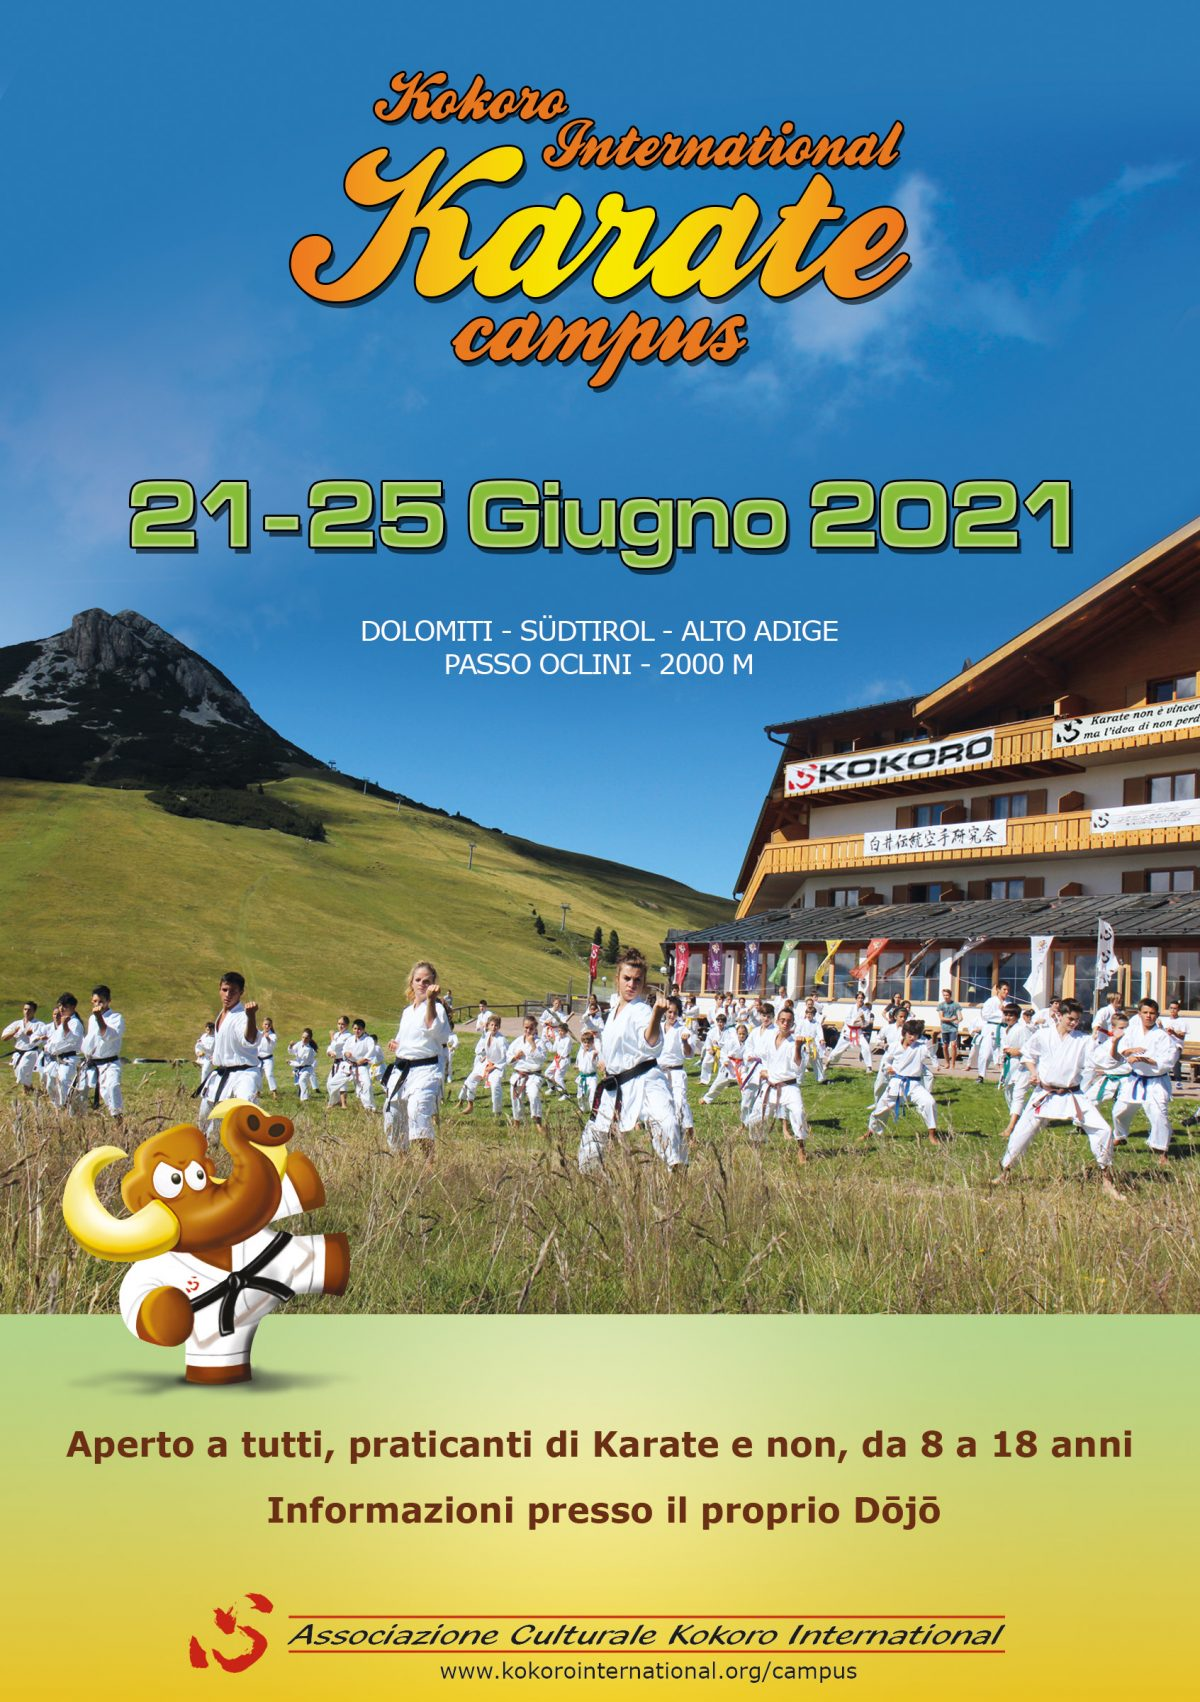 Kokoro International Karate Campus: Posticipato al 2021